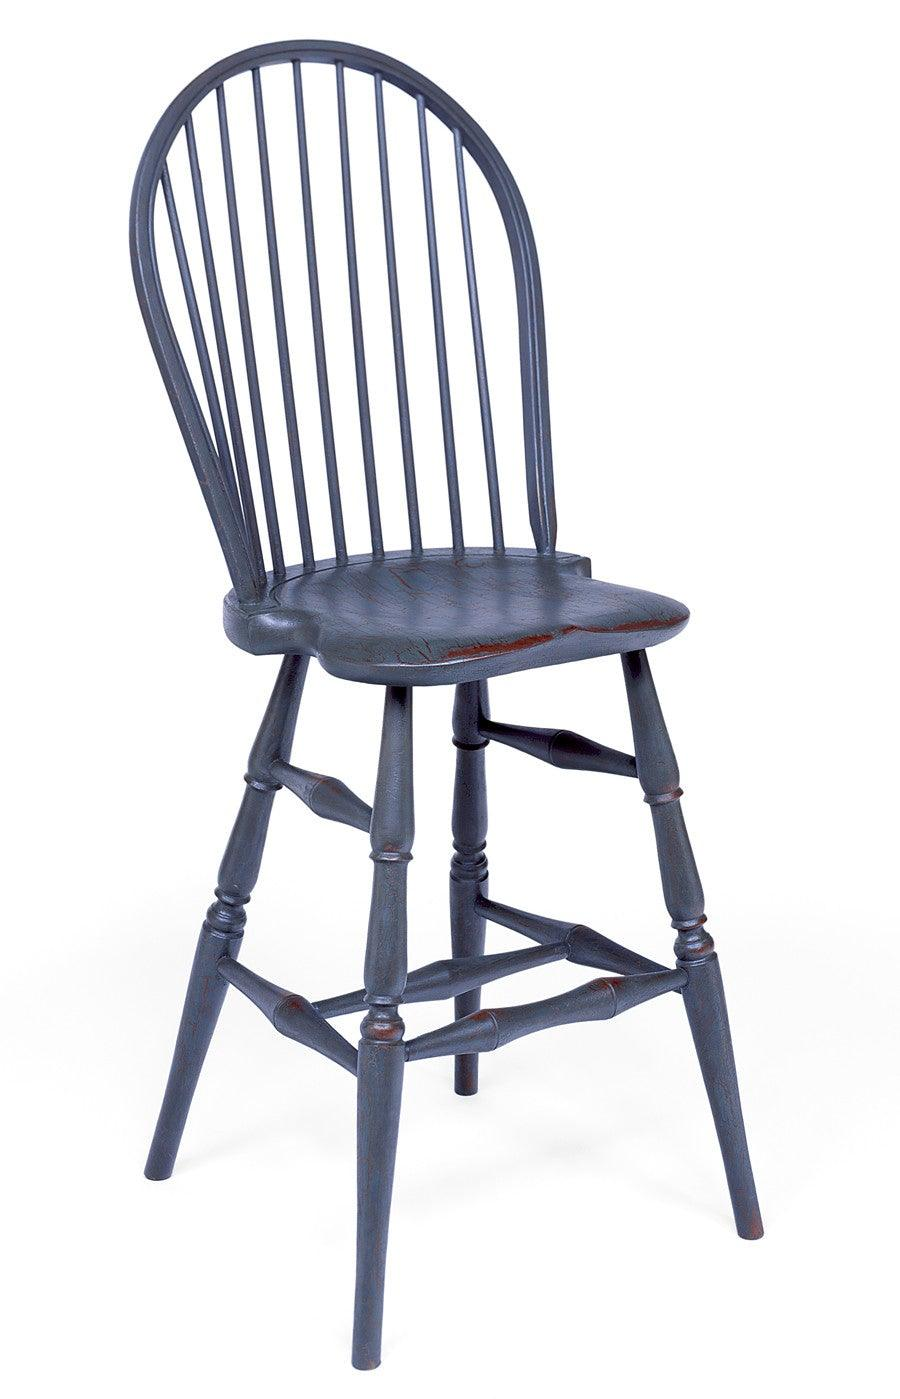 Bow back tavern chair in the style of Providence Rhode Island FSW-16b  sc 1 st  Federalist & Bow back tavern chair in the style of Providence Rhode Island FSW ...